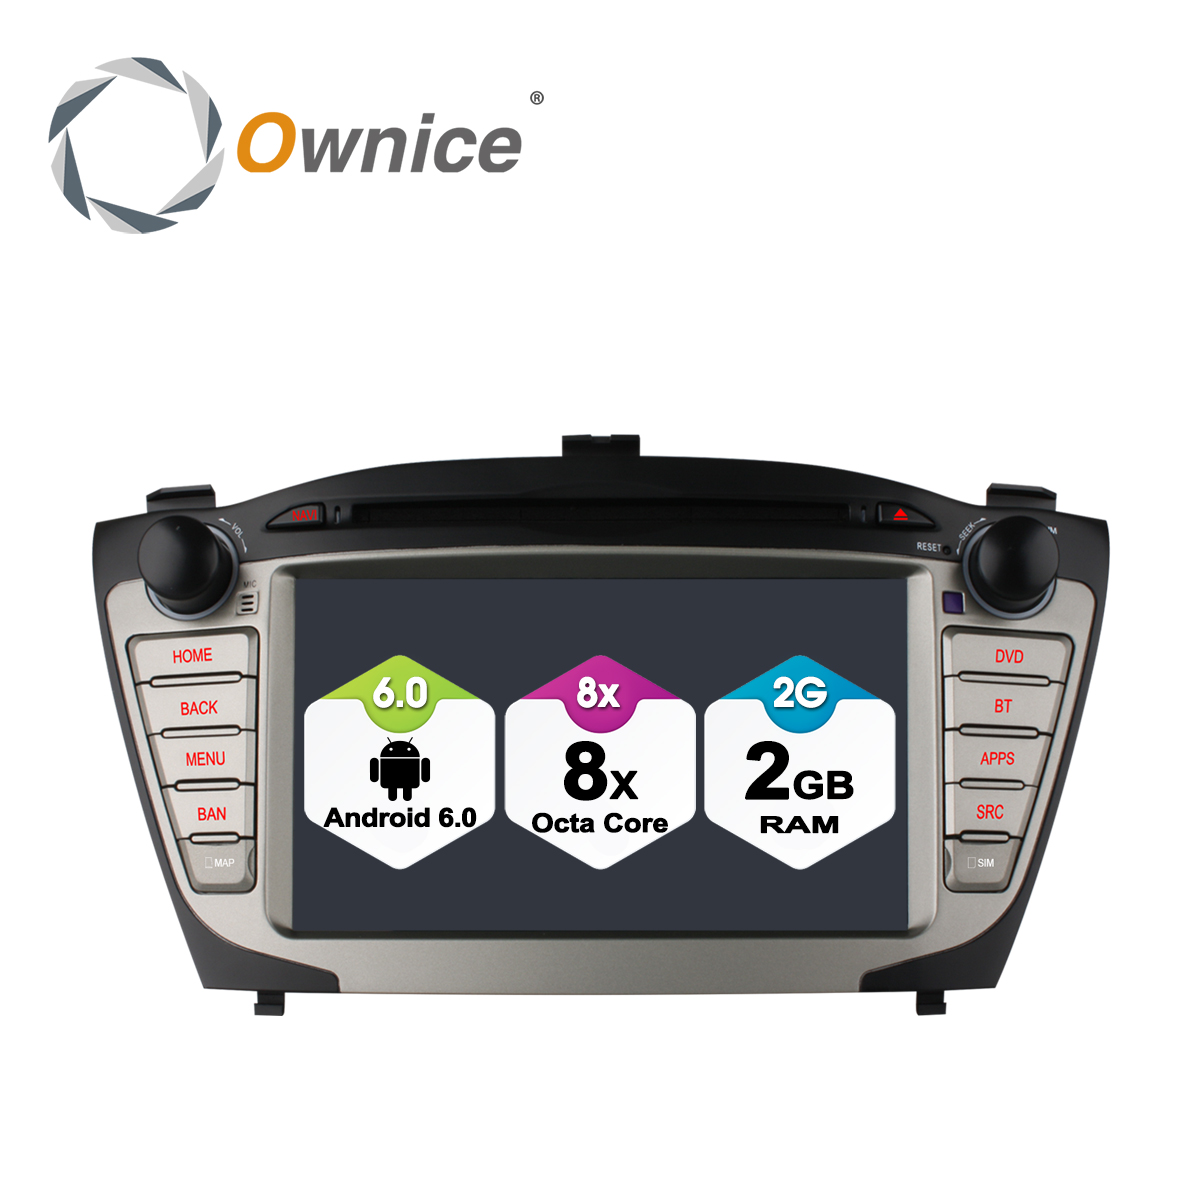 Ownice C500 Android 6 0 Octa 8 Core Car video For HYUNDAI IX35 Tucson car dvd aliexpress com buy ownice c500 android 6 0 octa 8 core car video  at gsmx.co